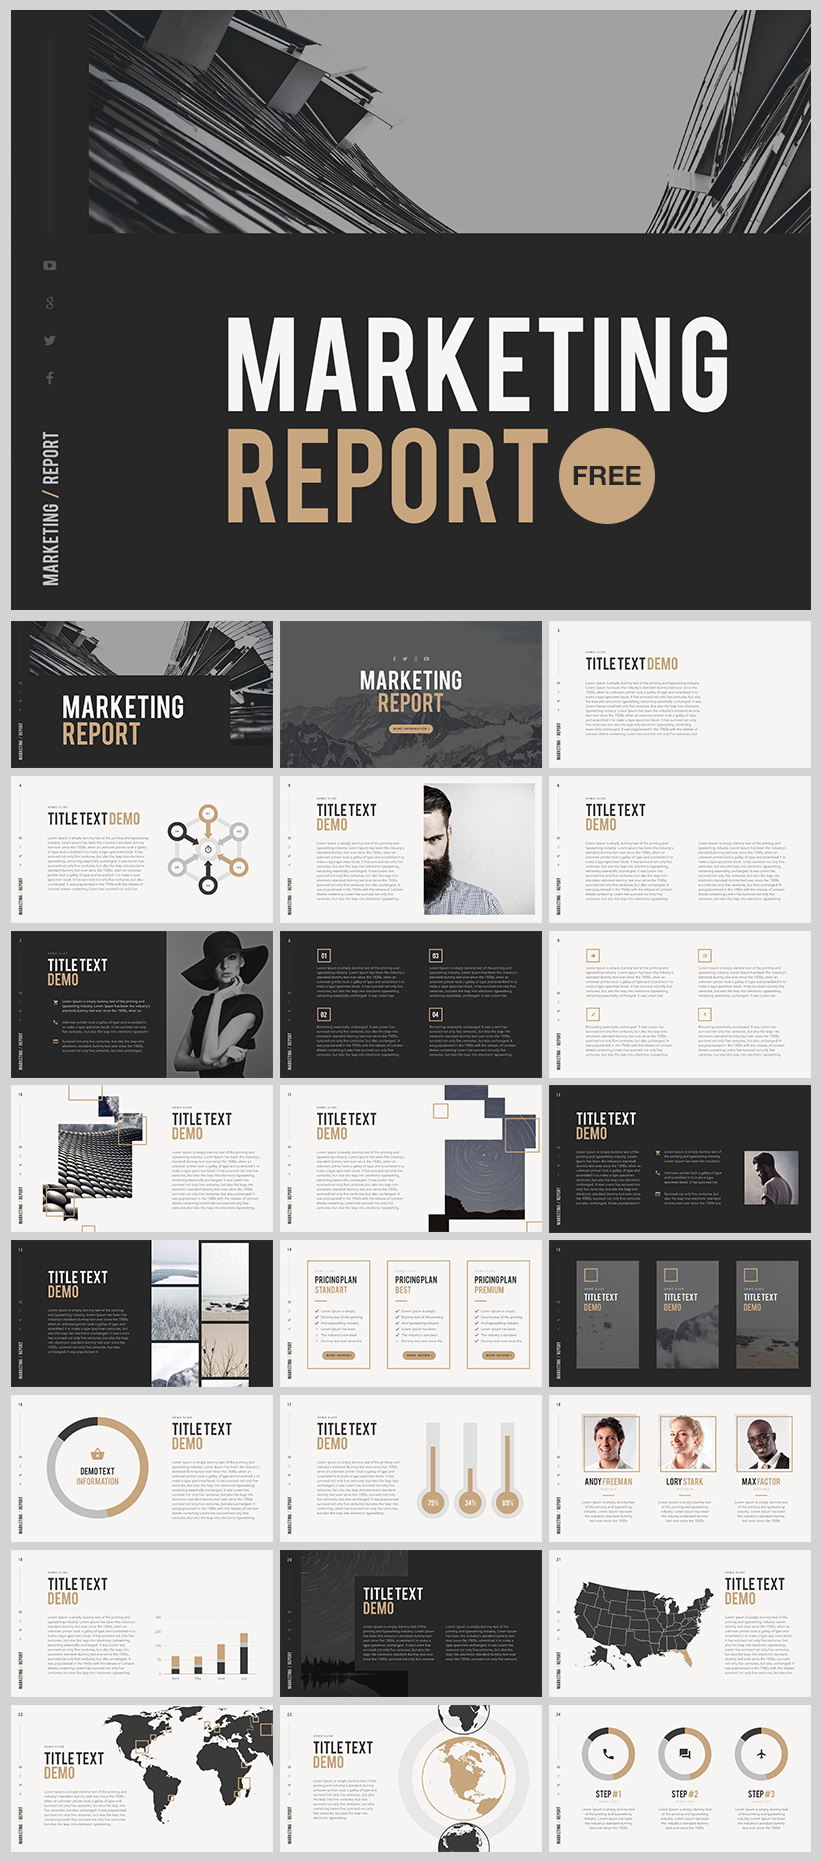 Marketing report template powerpoint digitalmarket pinterest marketing report template powerpoint toneelgroepblik